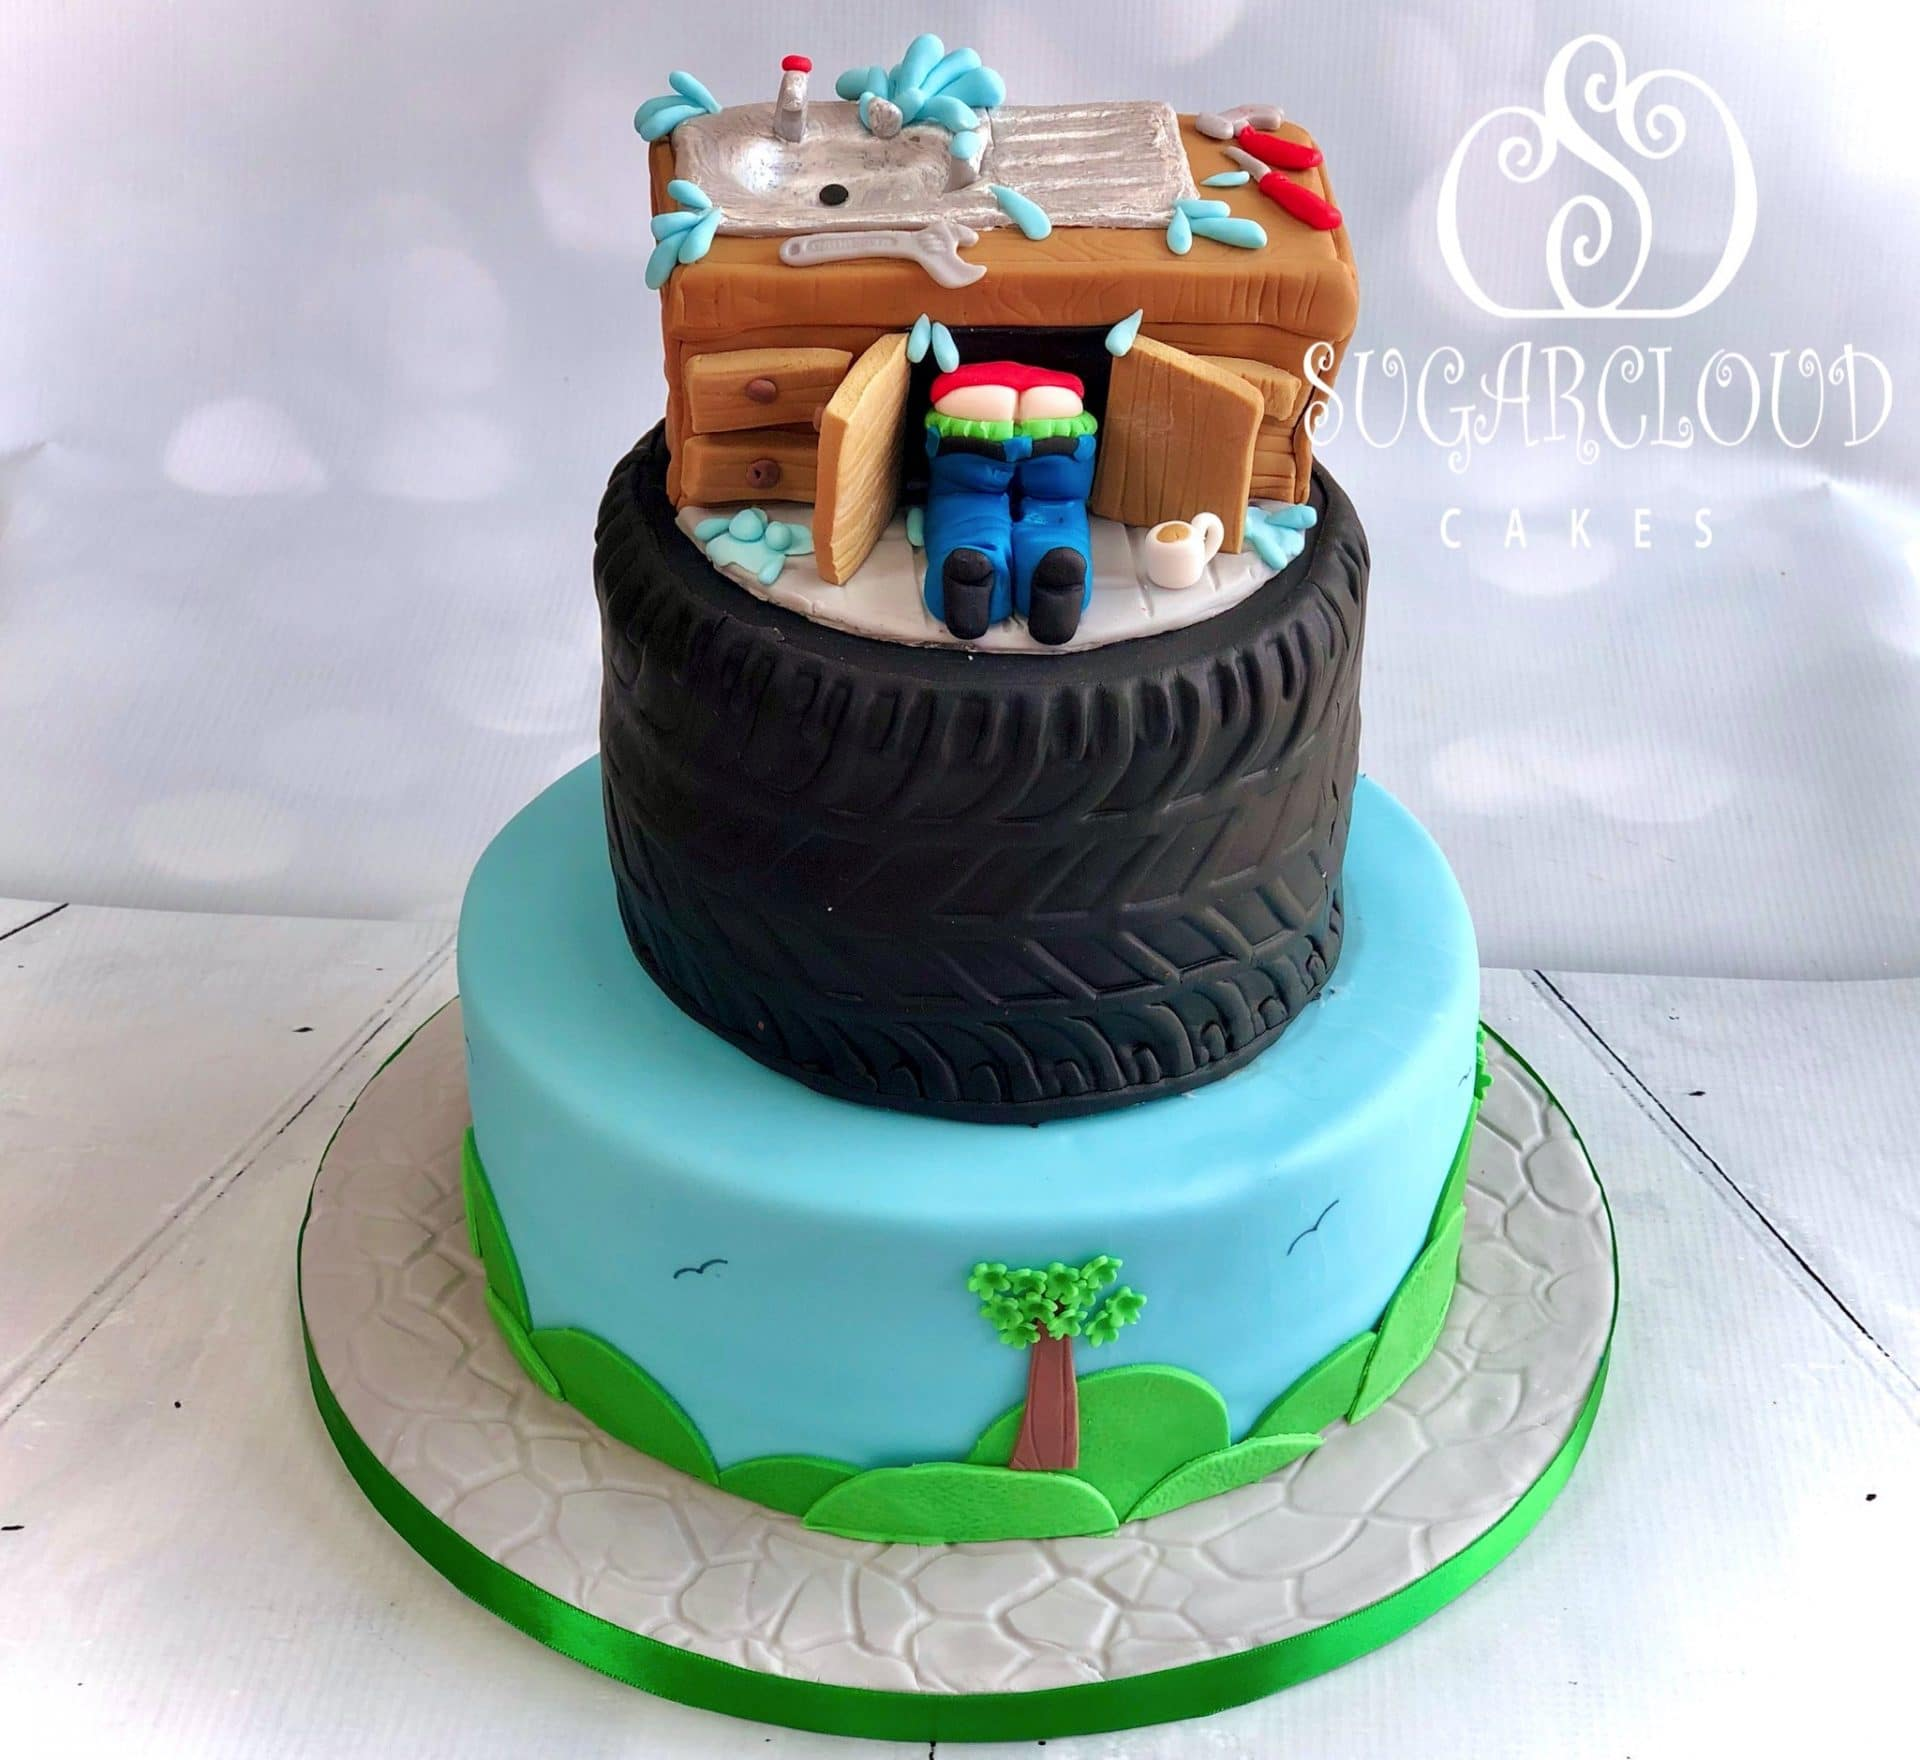 Surprise 40th Birthday Plumber Cake